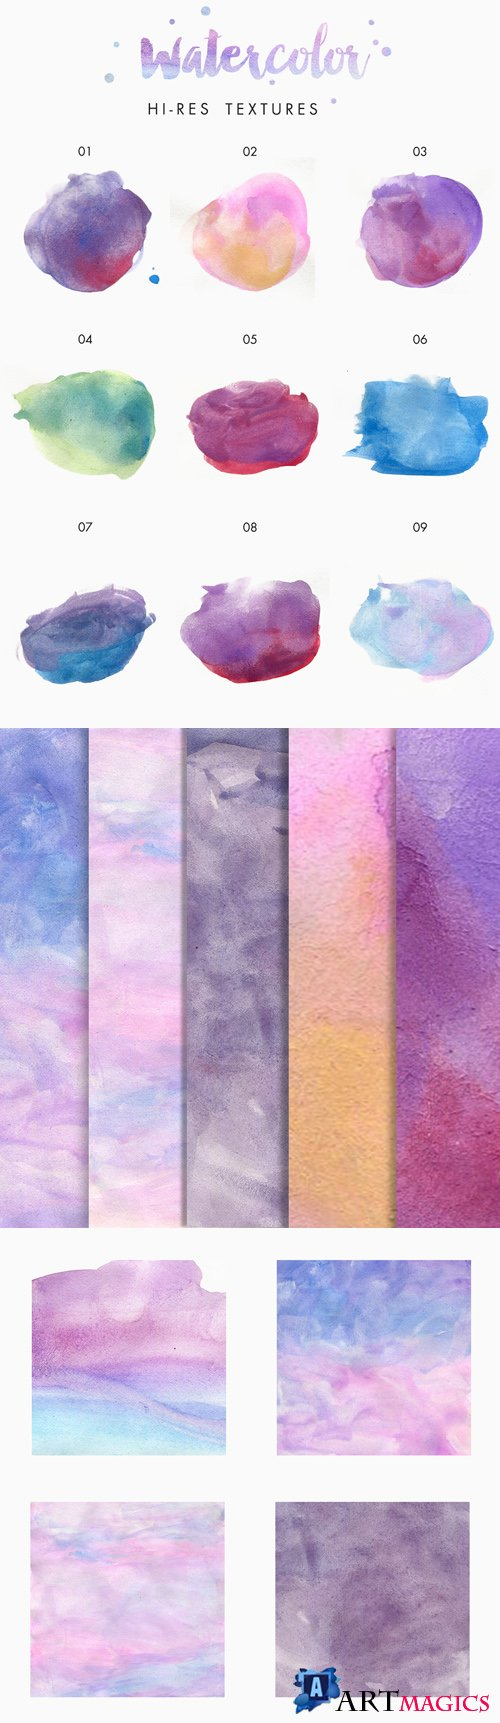 Hi-Res Watercolor Textures, part 2